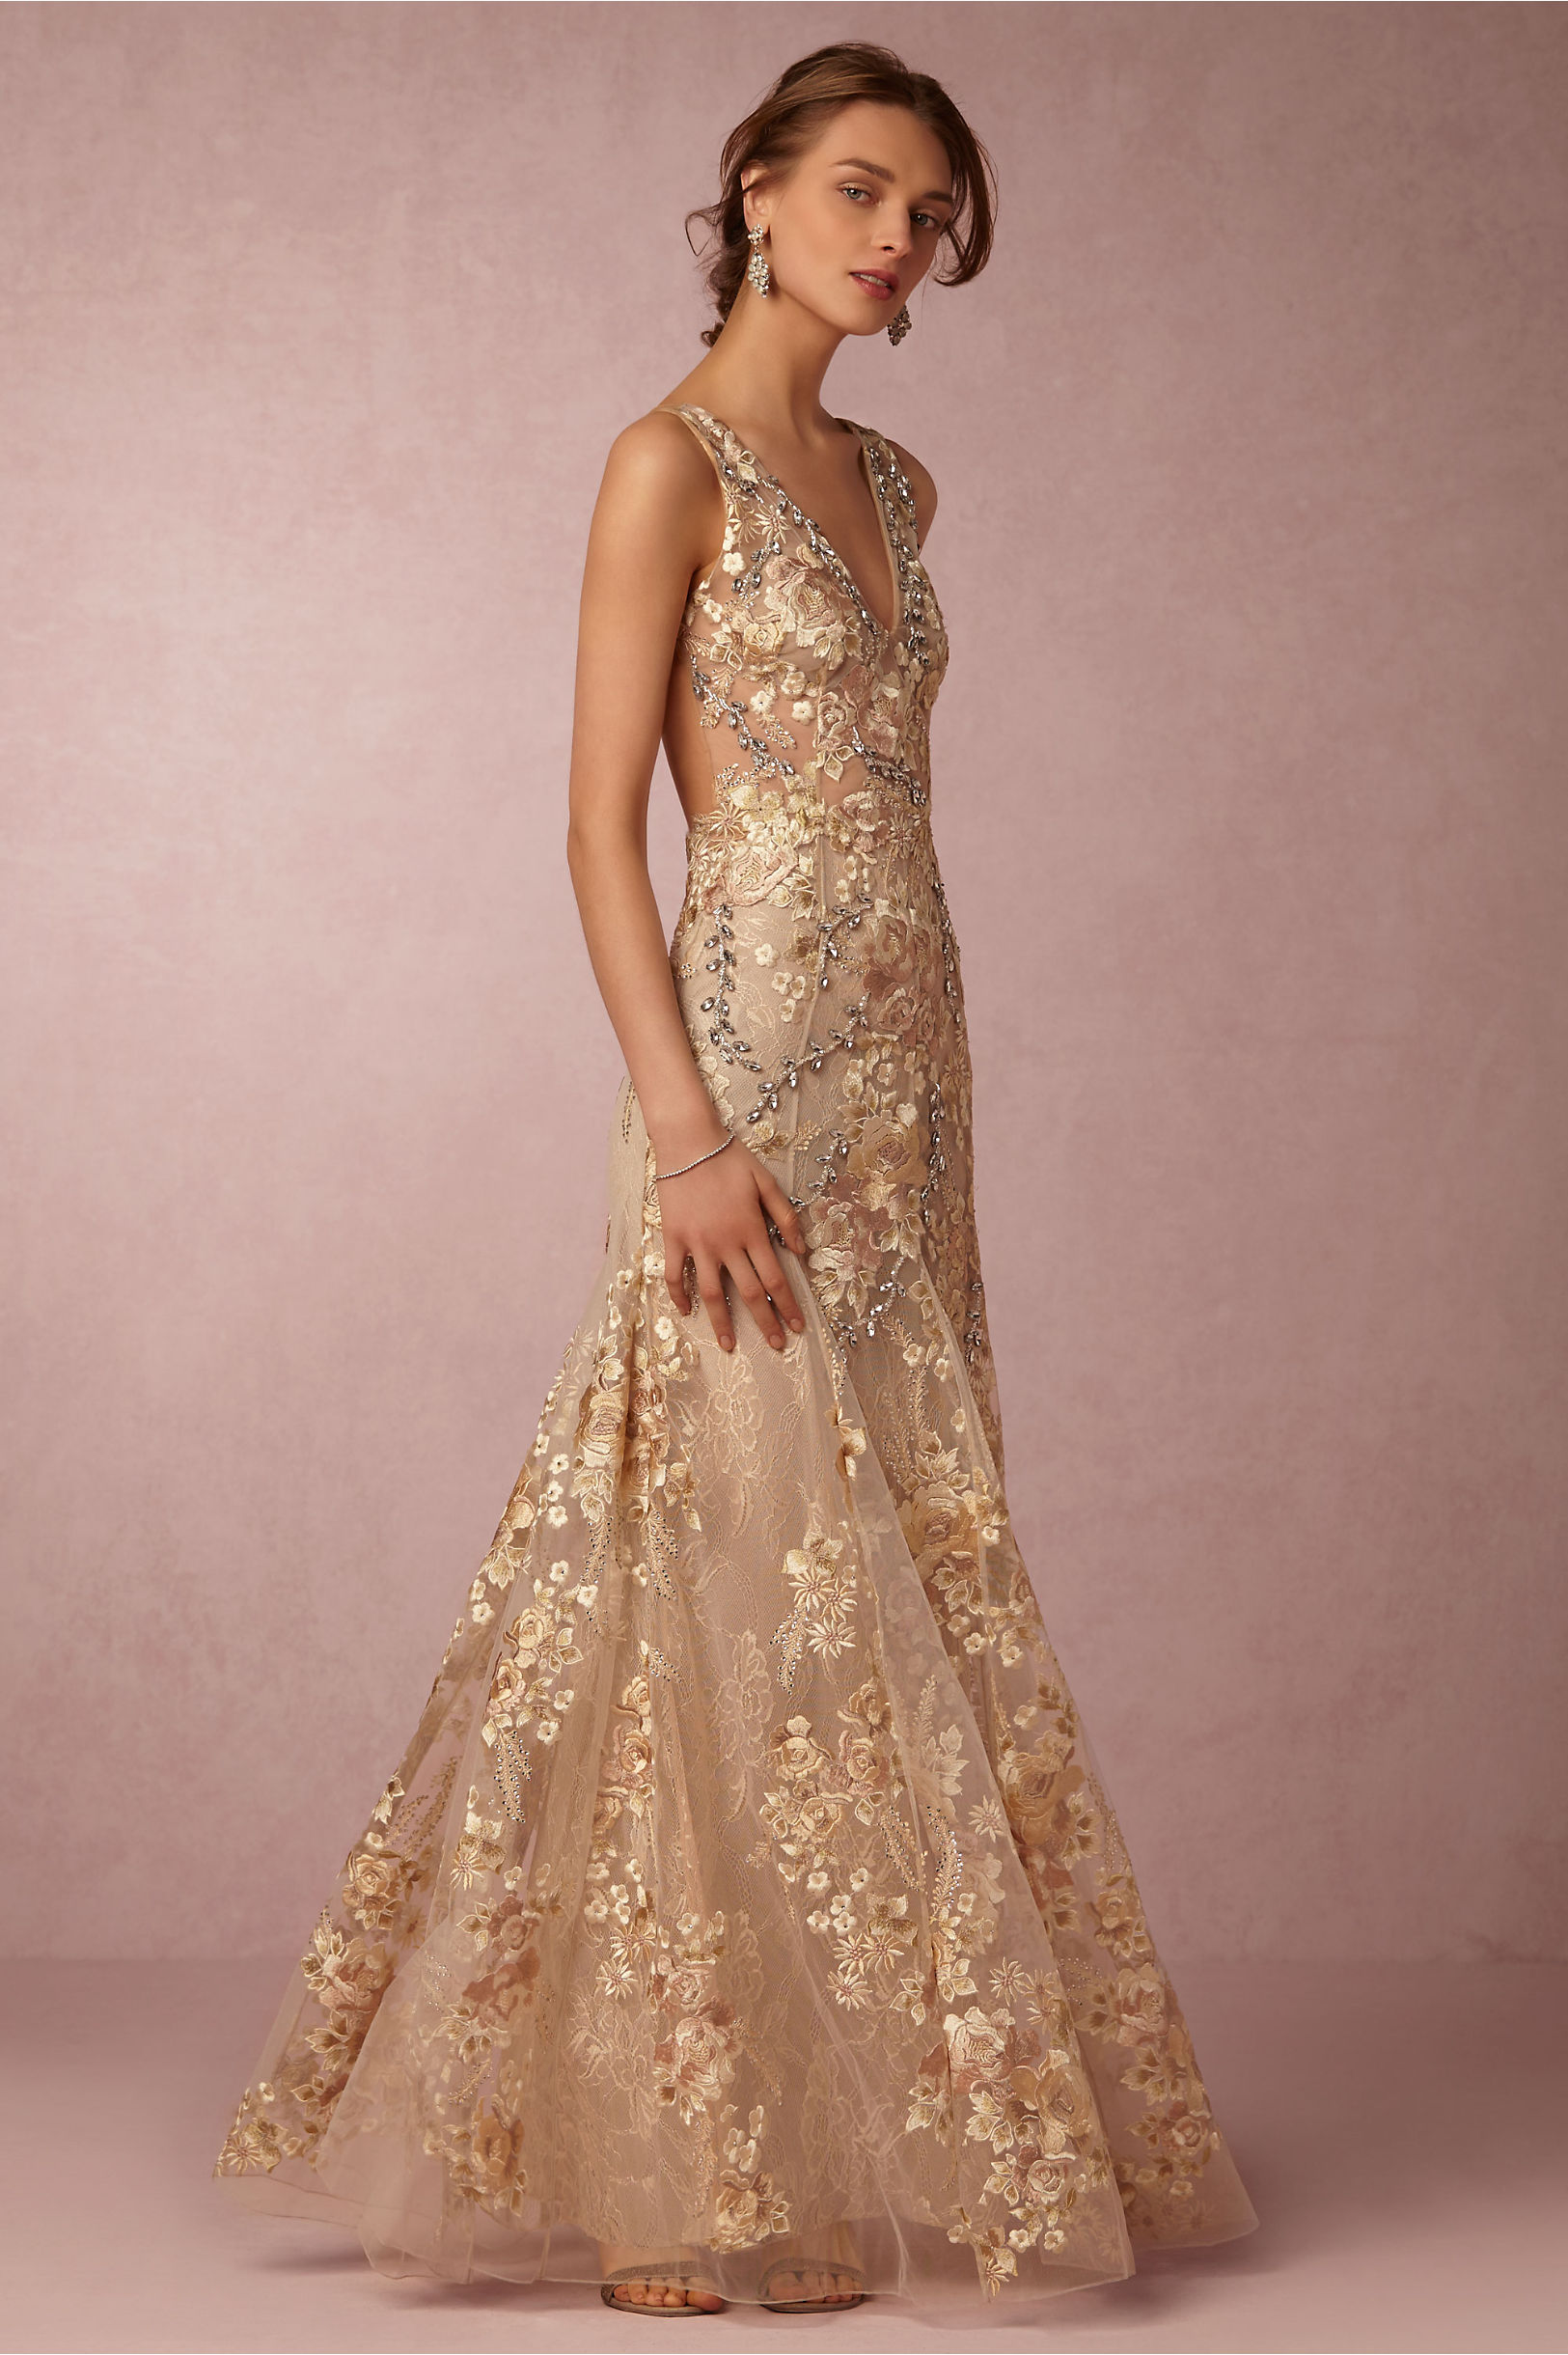 gabriela gown formal dresses for weddings Patricia Bonaldi Gold Gabriela Gown BHLDN